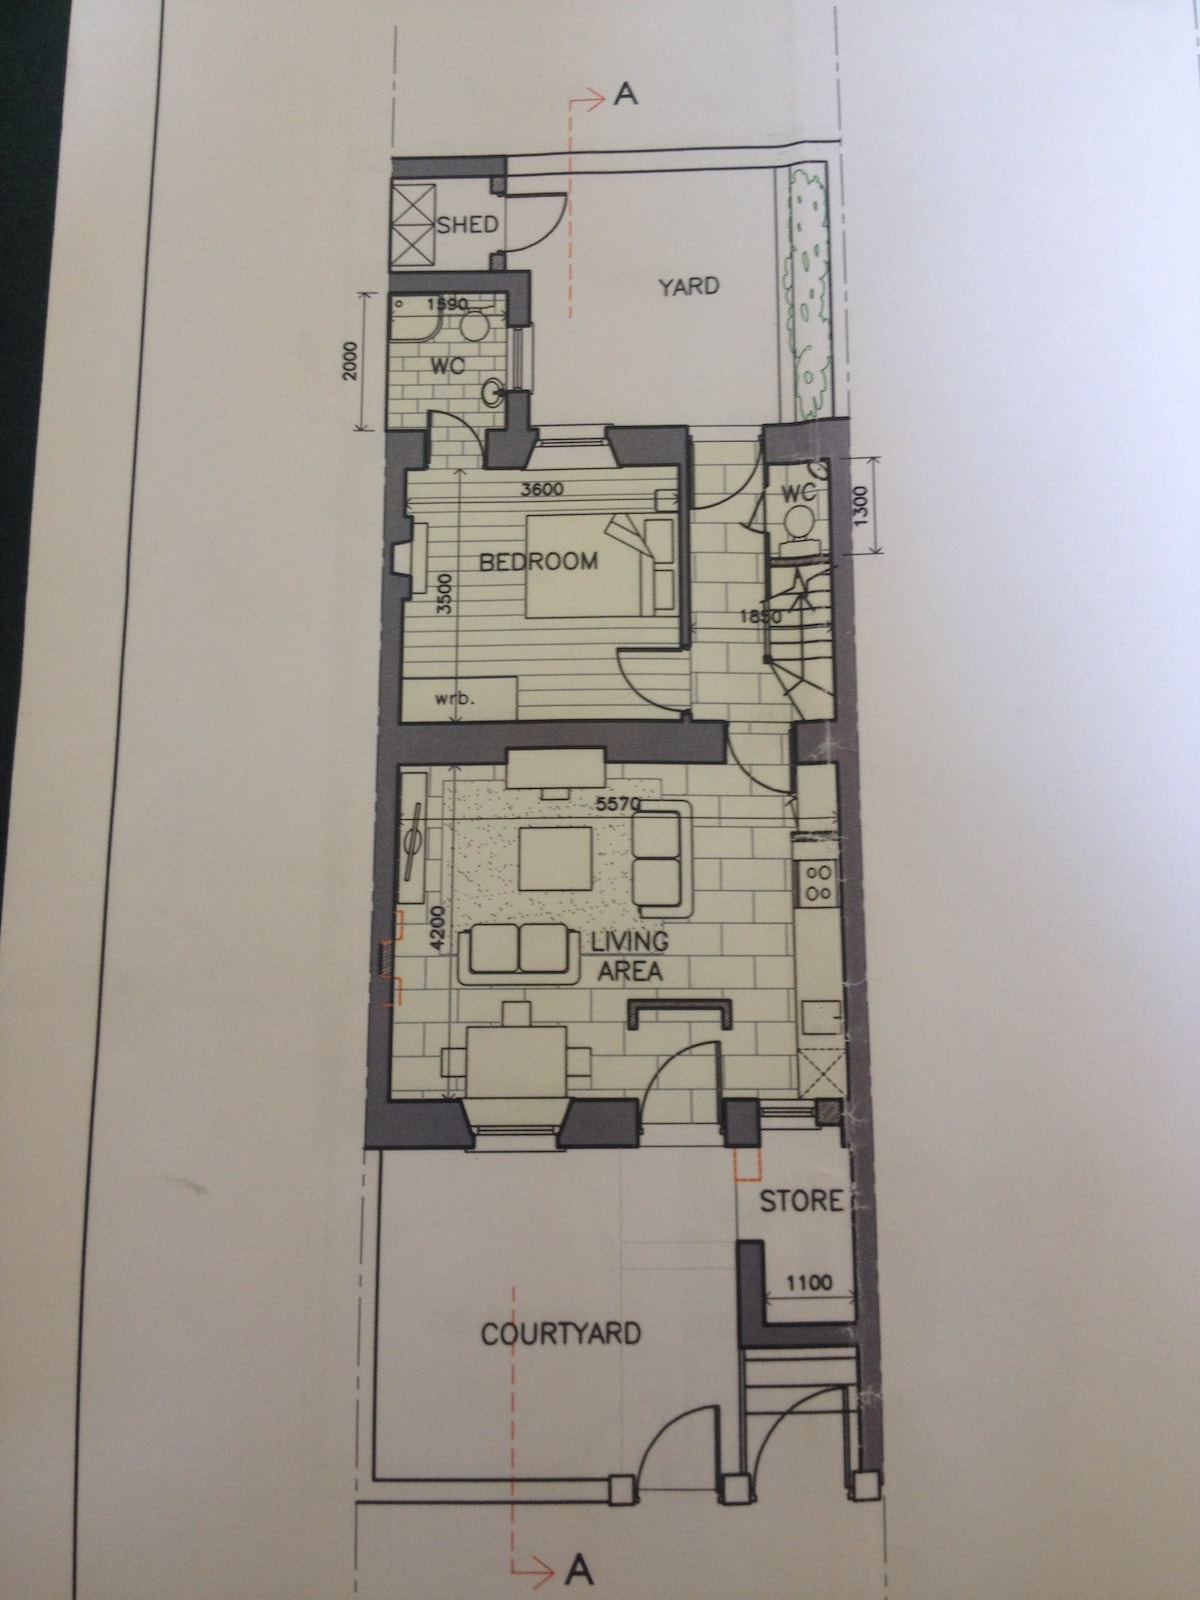 Plan and layout